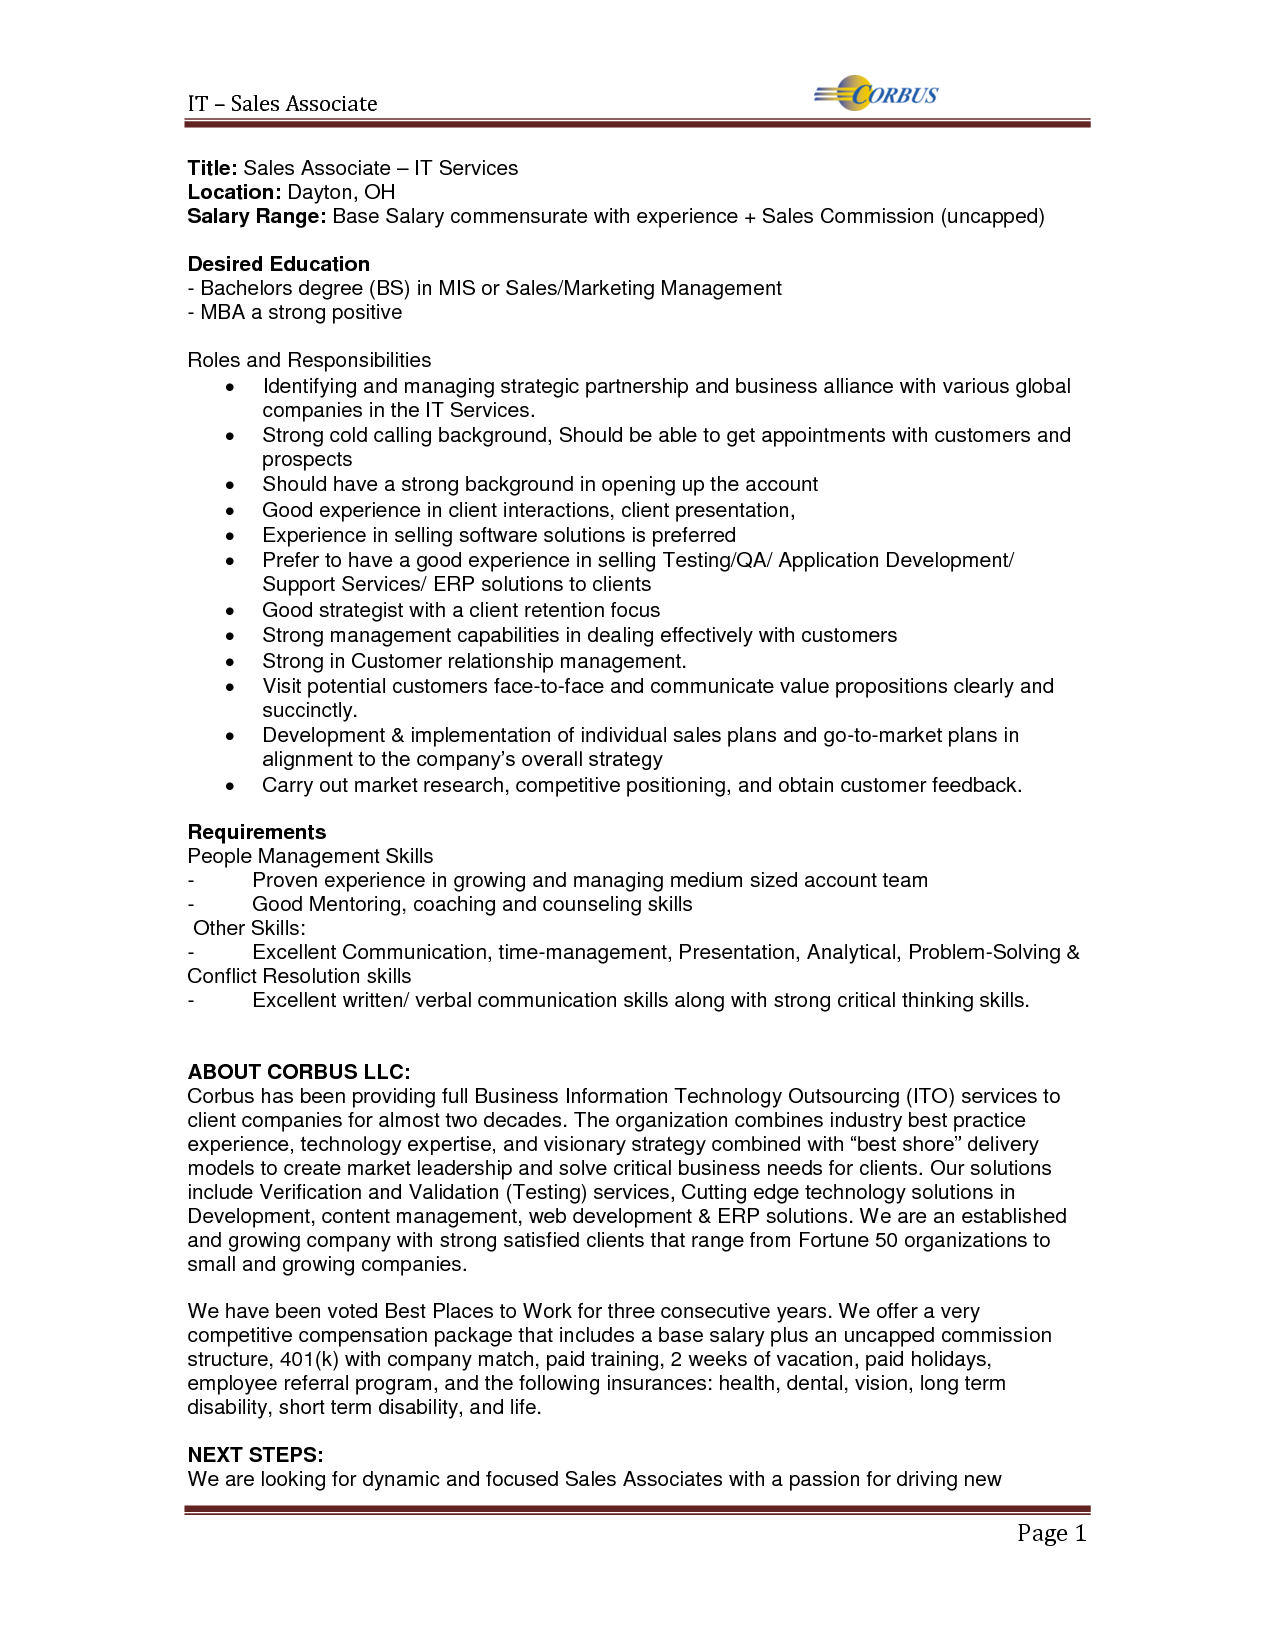 sales associate job description objective - SampleBusinessResume.com ...